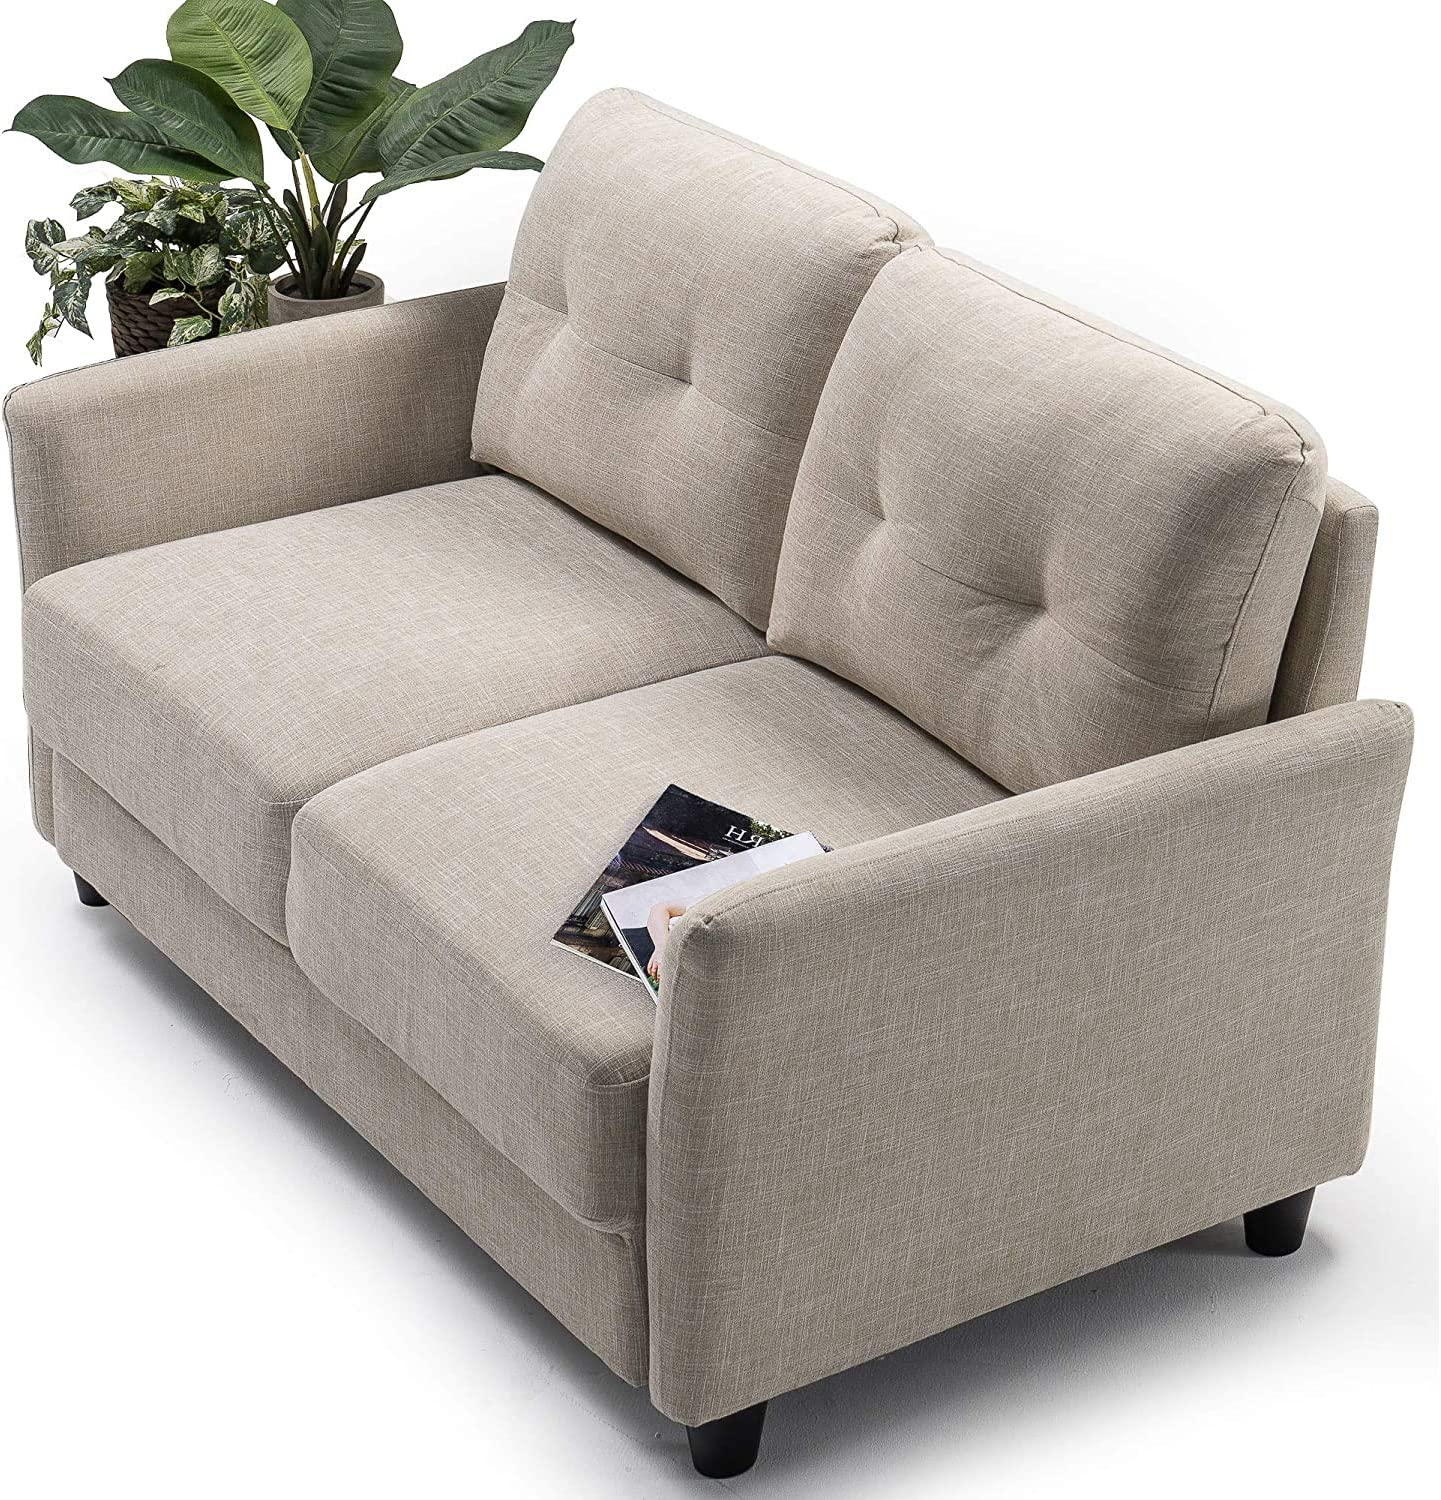 ZINUS Ricardo Loveseat Sofa / Tufted Cushions / Easy, Tool-Free Assembly, Beige